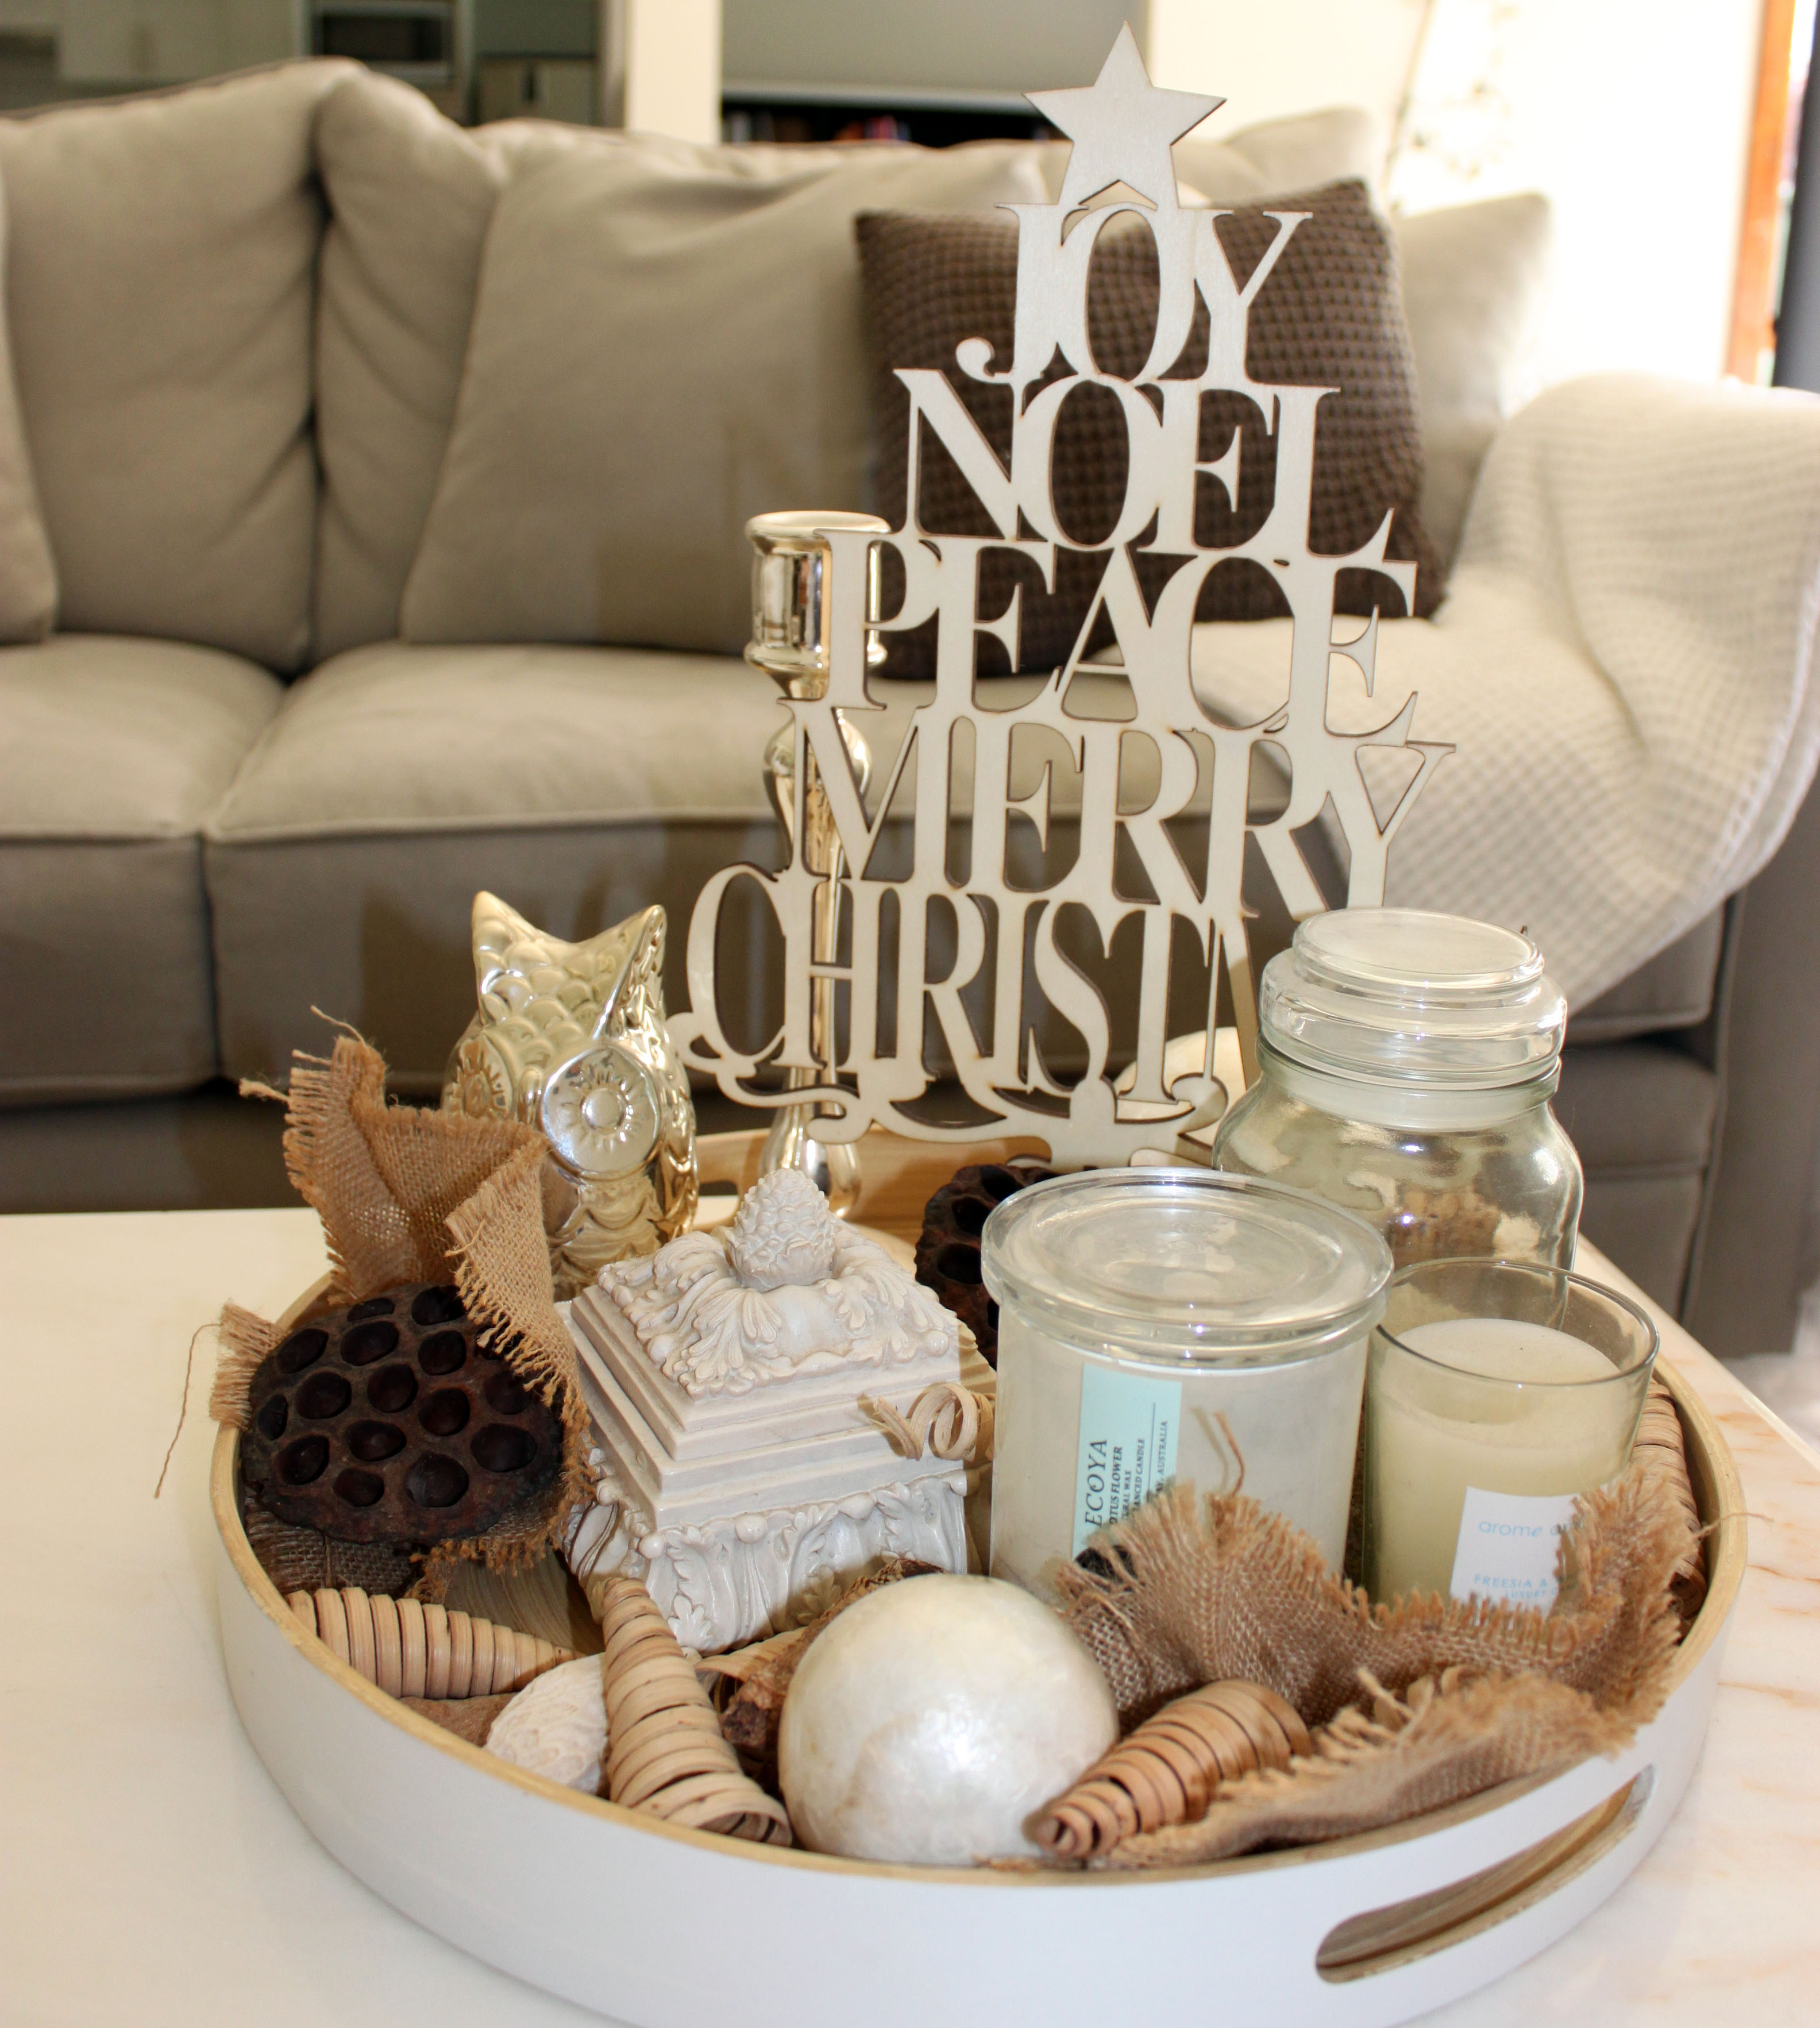 Centerpiece Ideas For Coffee Table: My Simple Christmas Coffee Table Display